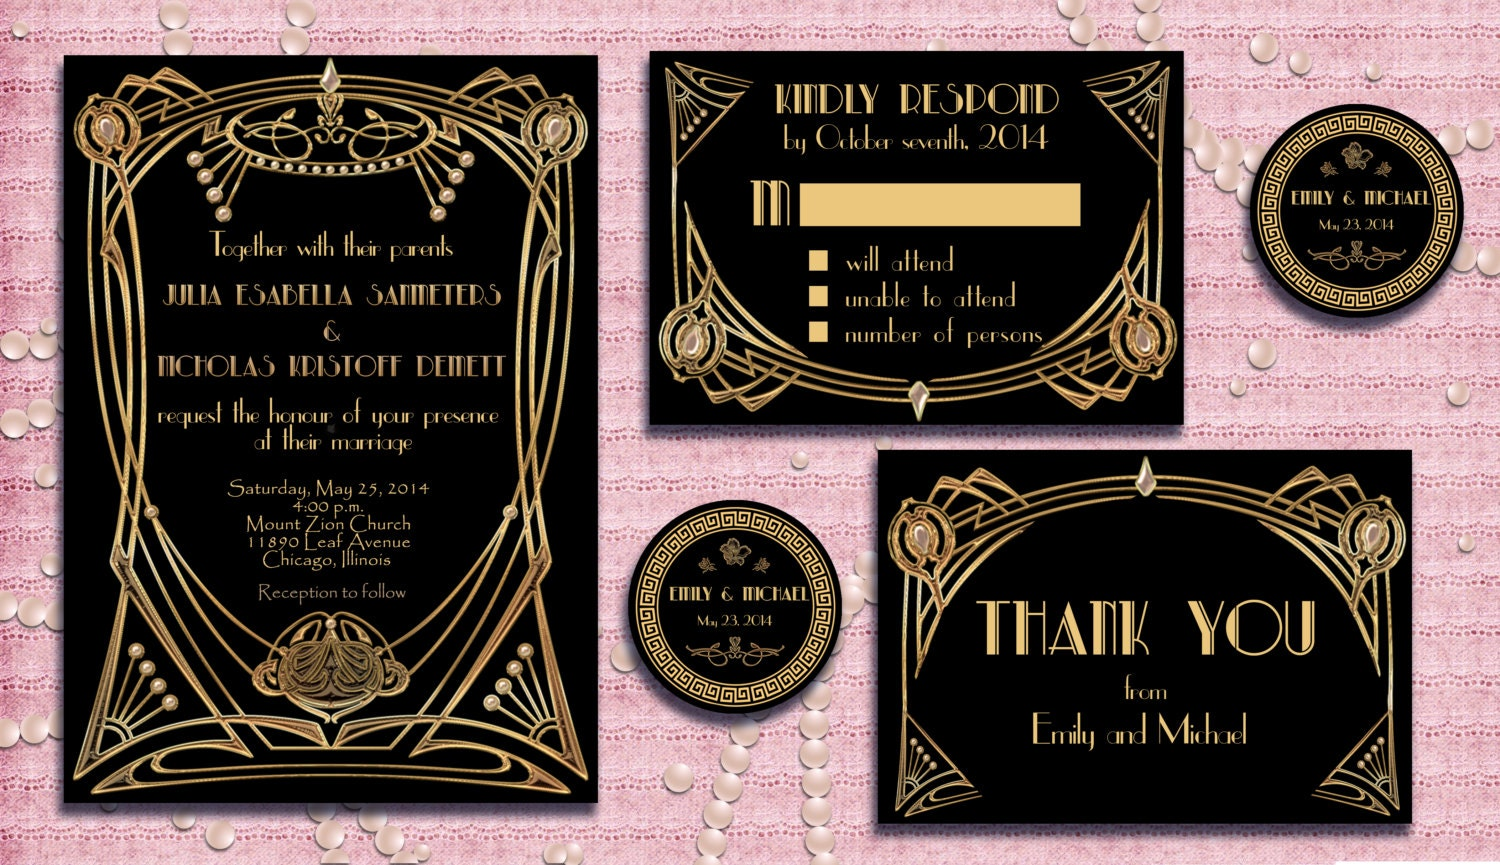 Gatsby Wedding Invitation: Great Gatsby Style Art Deco Wedding Invitation Suite With RSVP